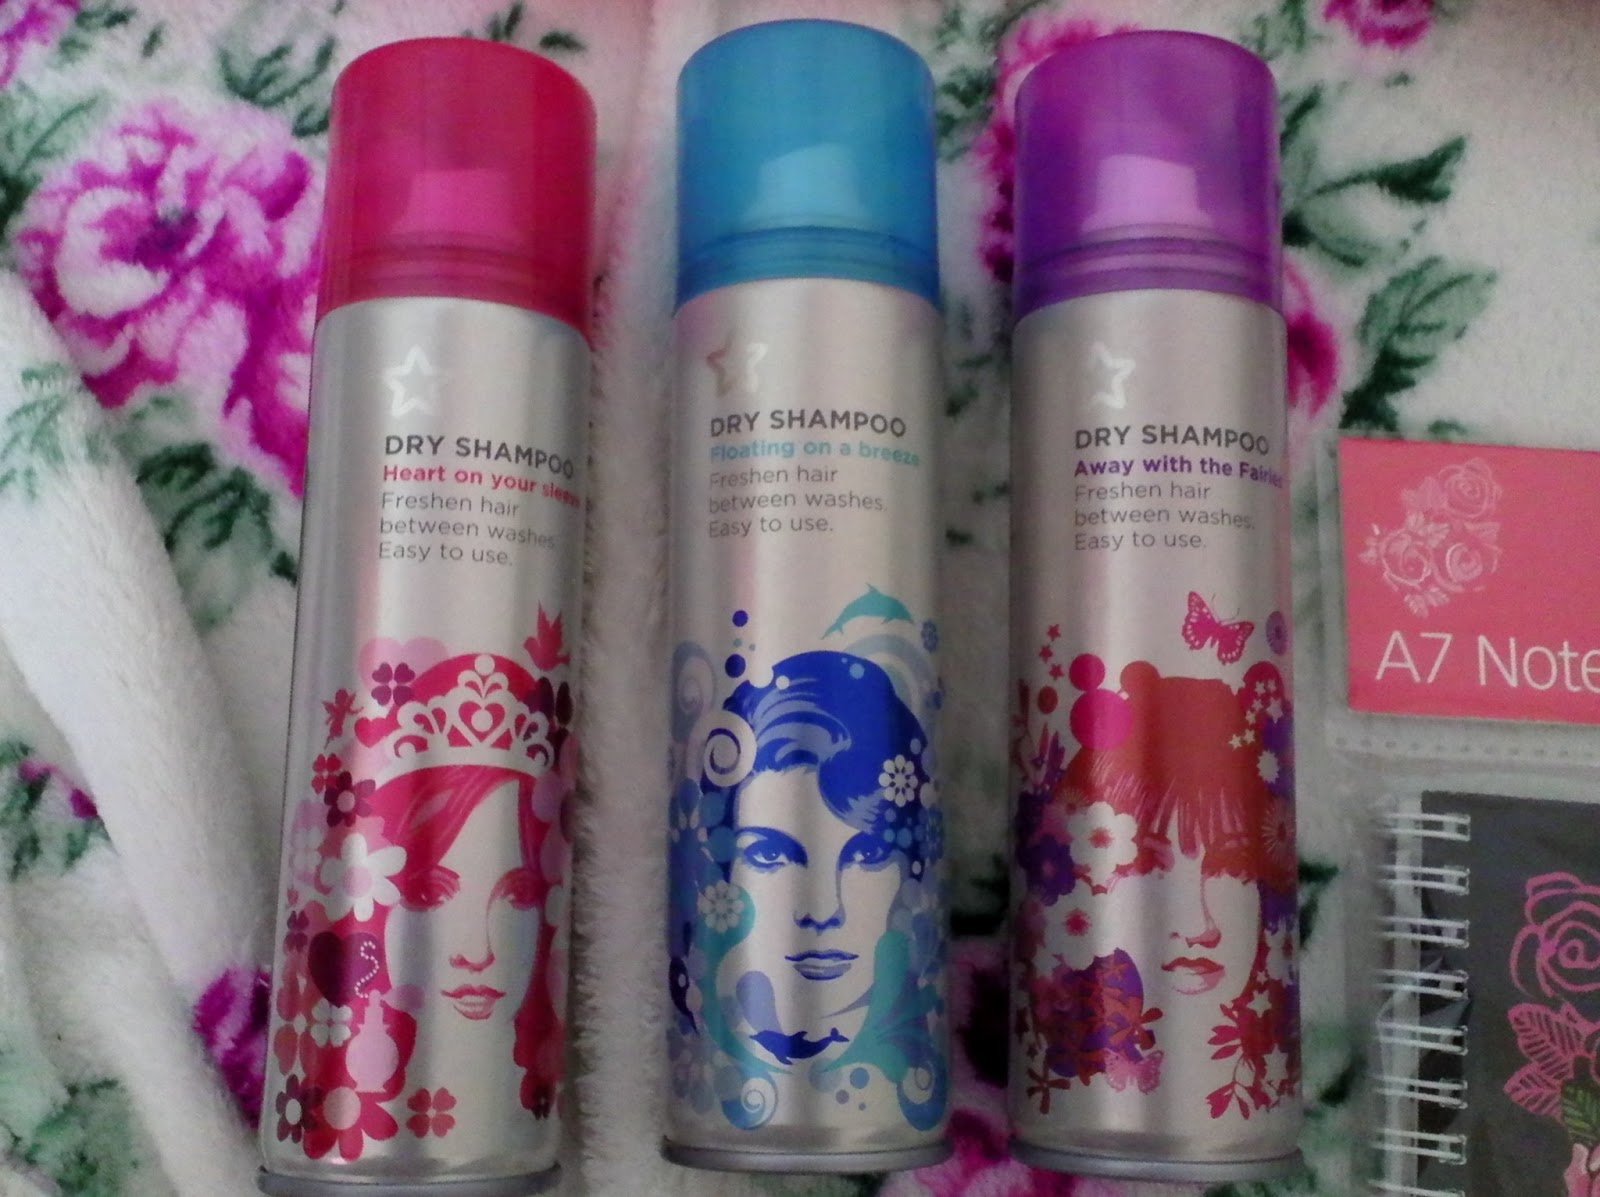 3eea01de171 3 x Superdrug Dry Shampoos was £1.99 each Now Buy 1 get 2 free!